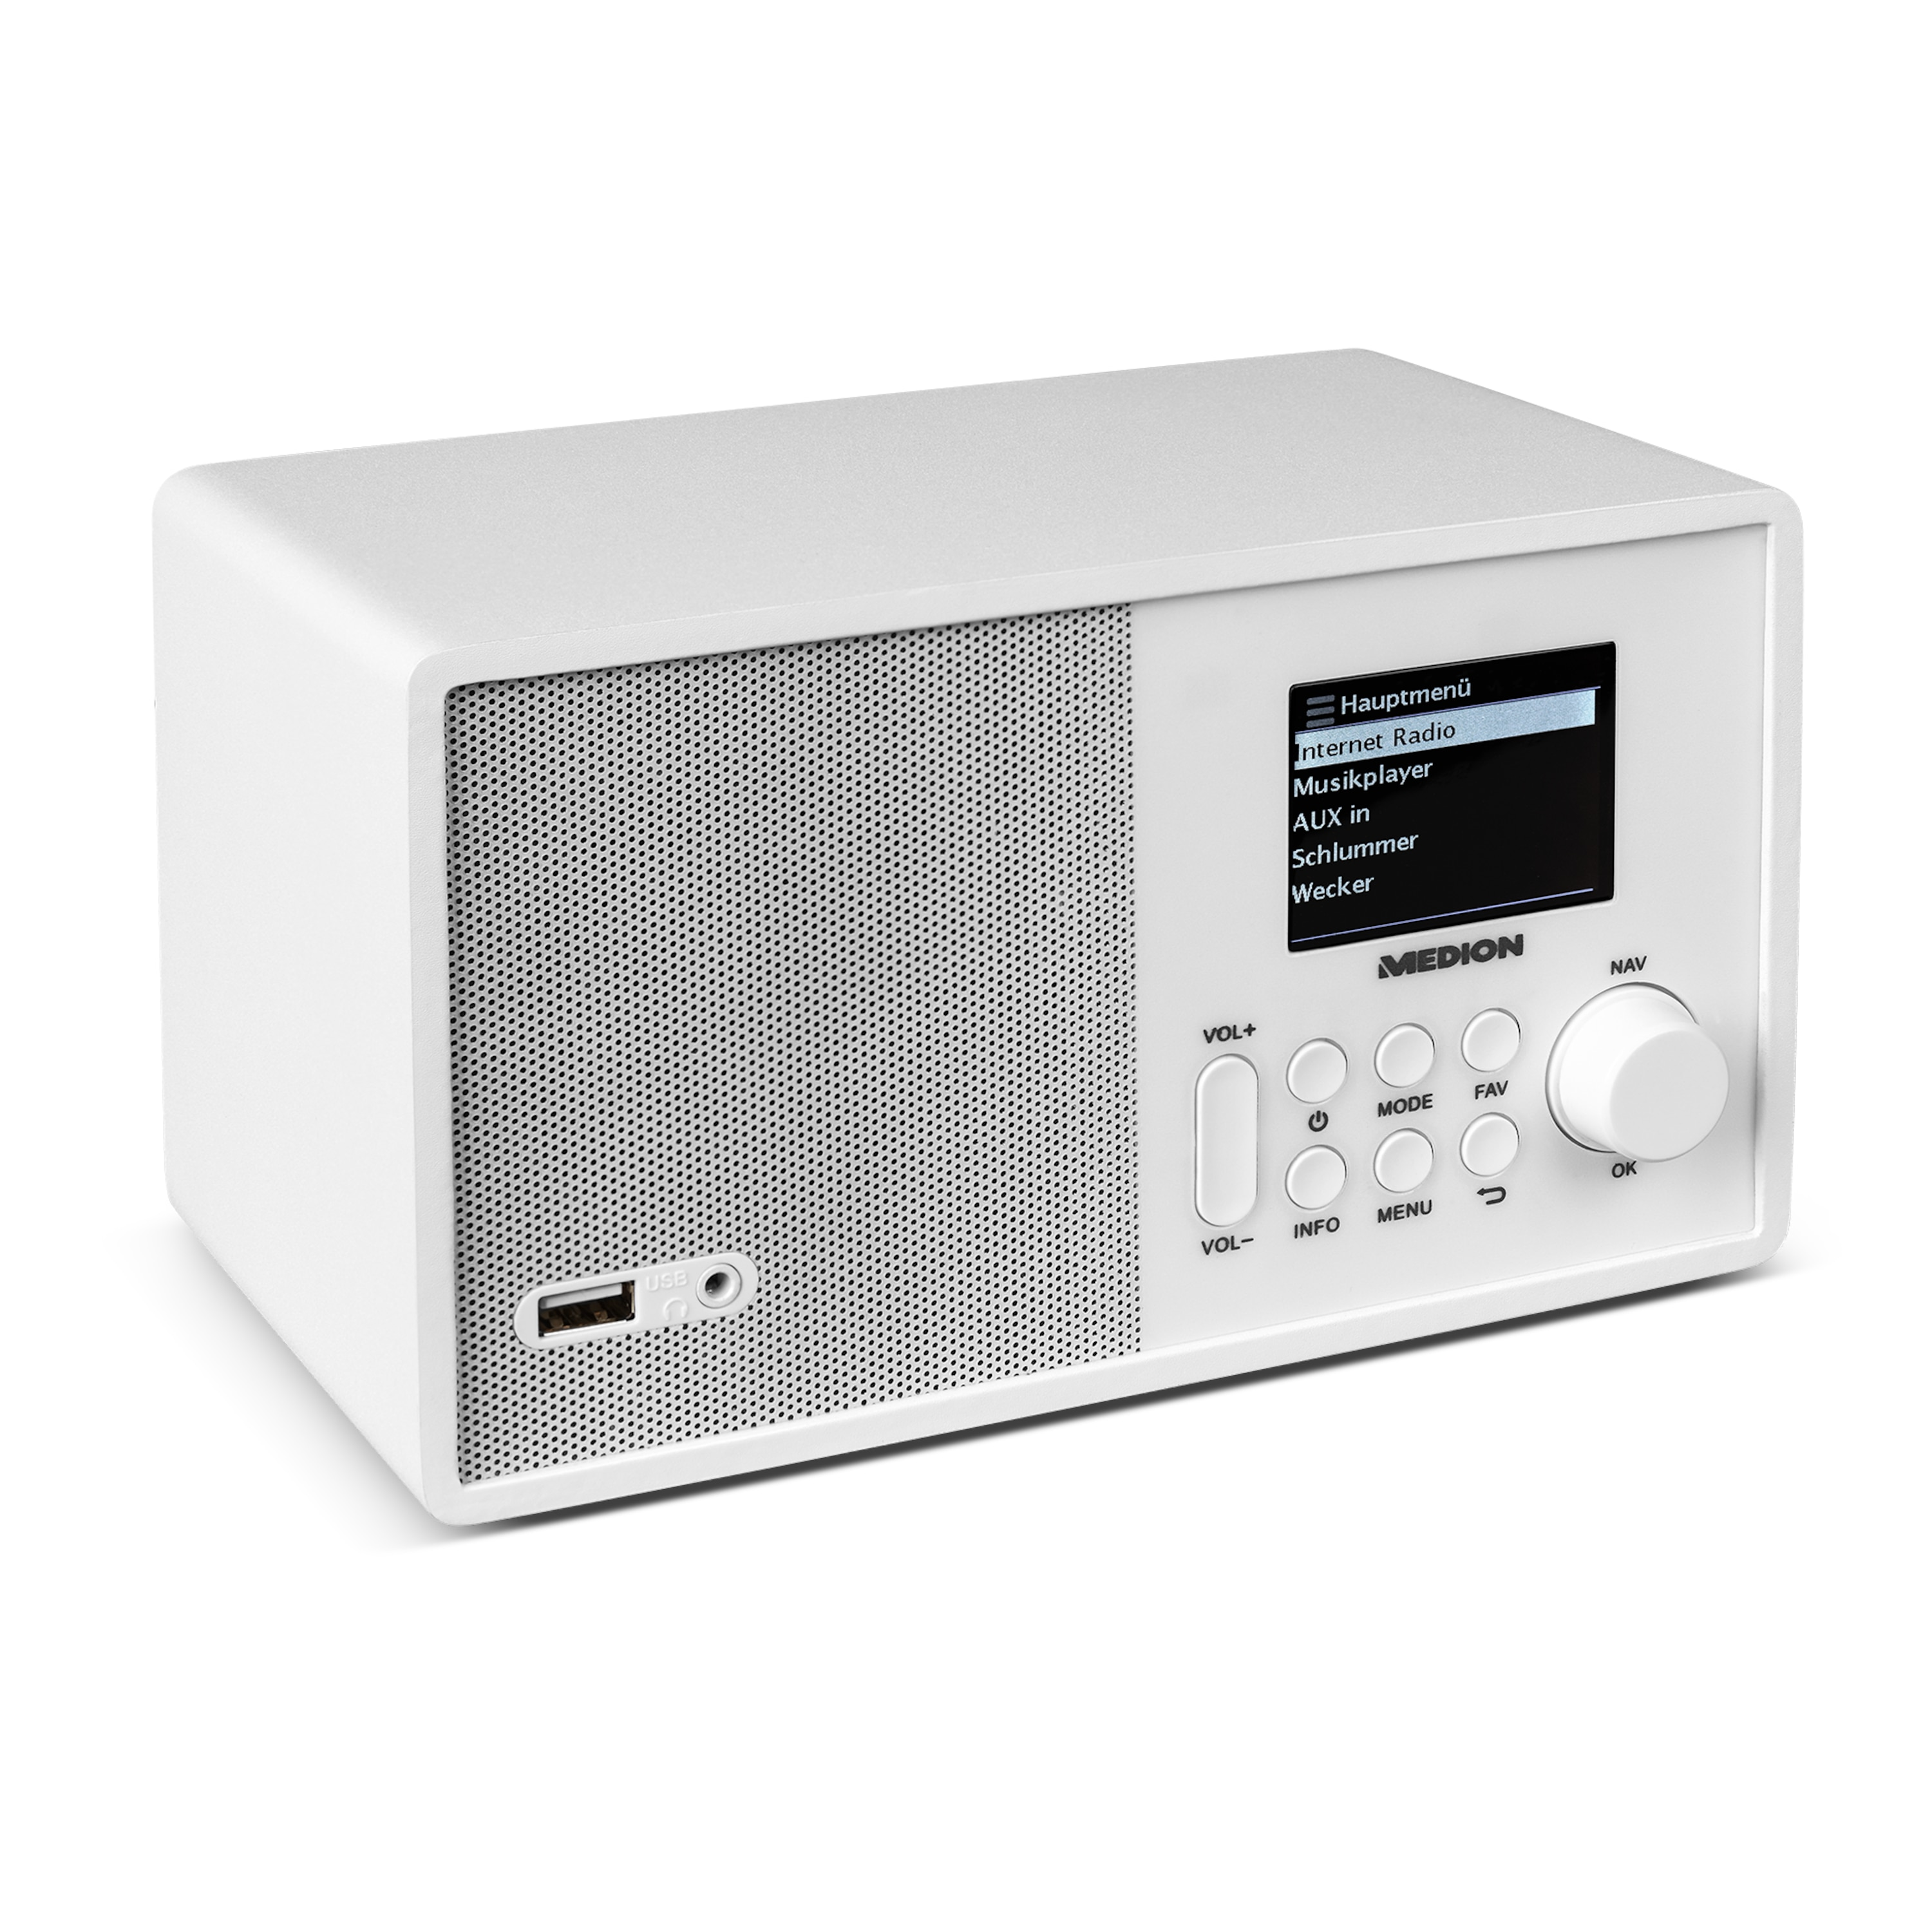 MEDION® E85040 WLAN-Internetradio, Solides Holzgehäuse, 6,1 cm (2,4) TFT-Display, DLNA/UPnP, FM/UKW, LAN, USB 2.0, AUX, 1 x 10 W RMS